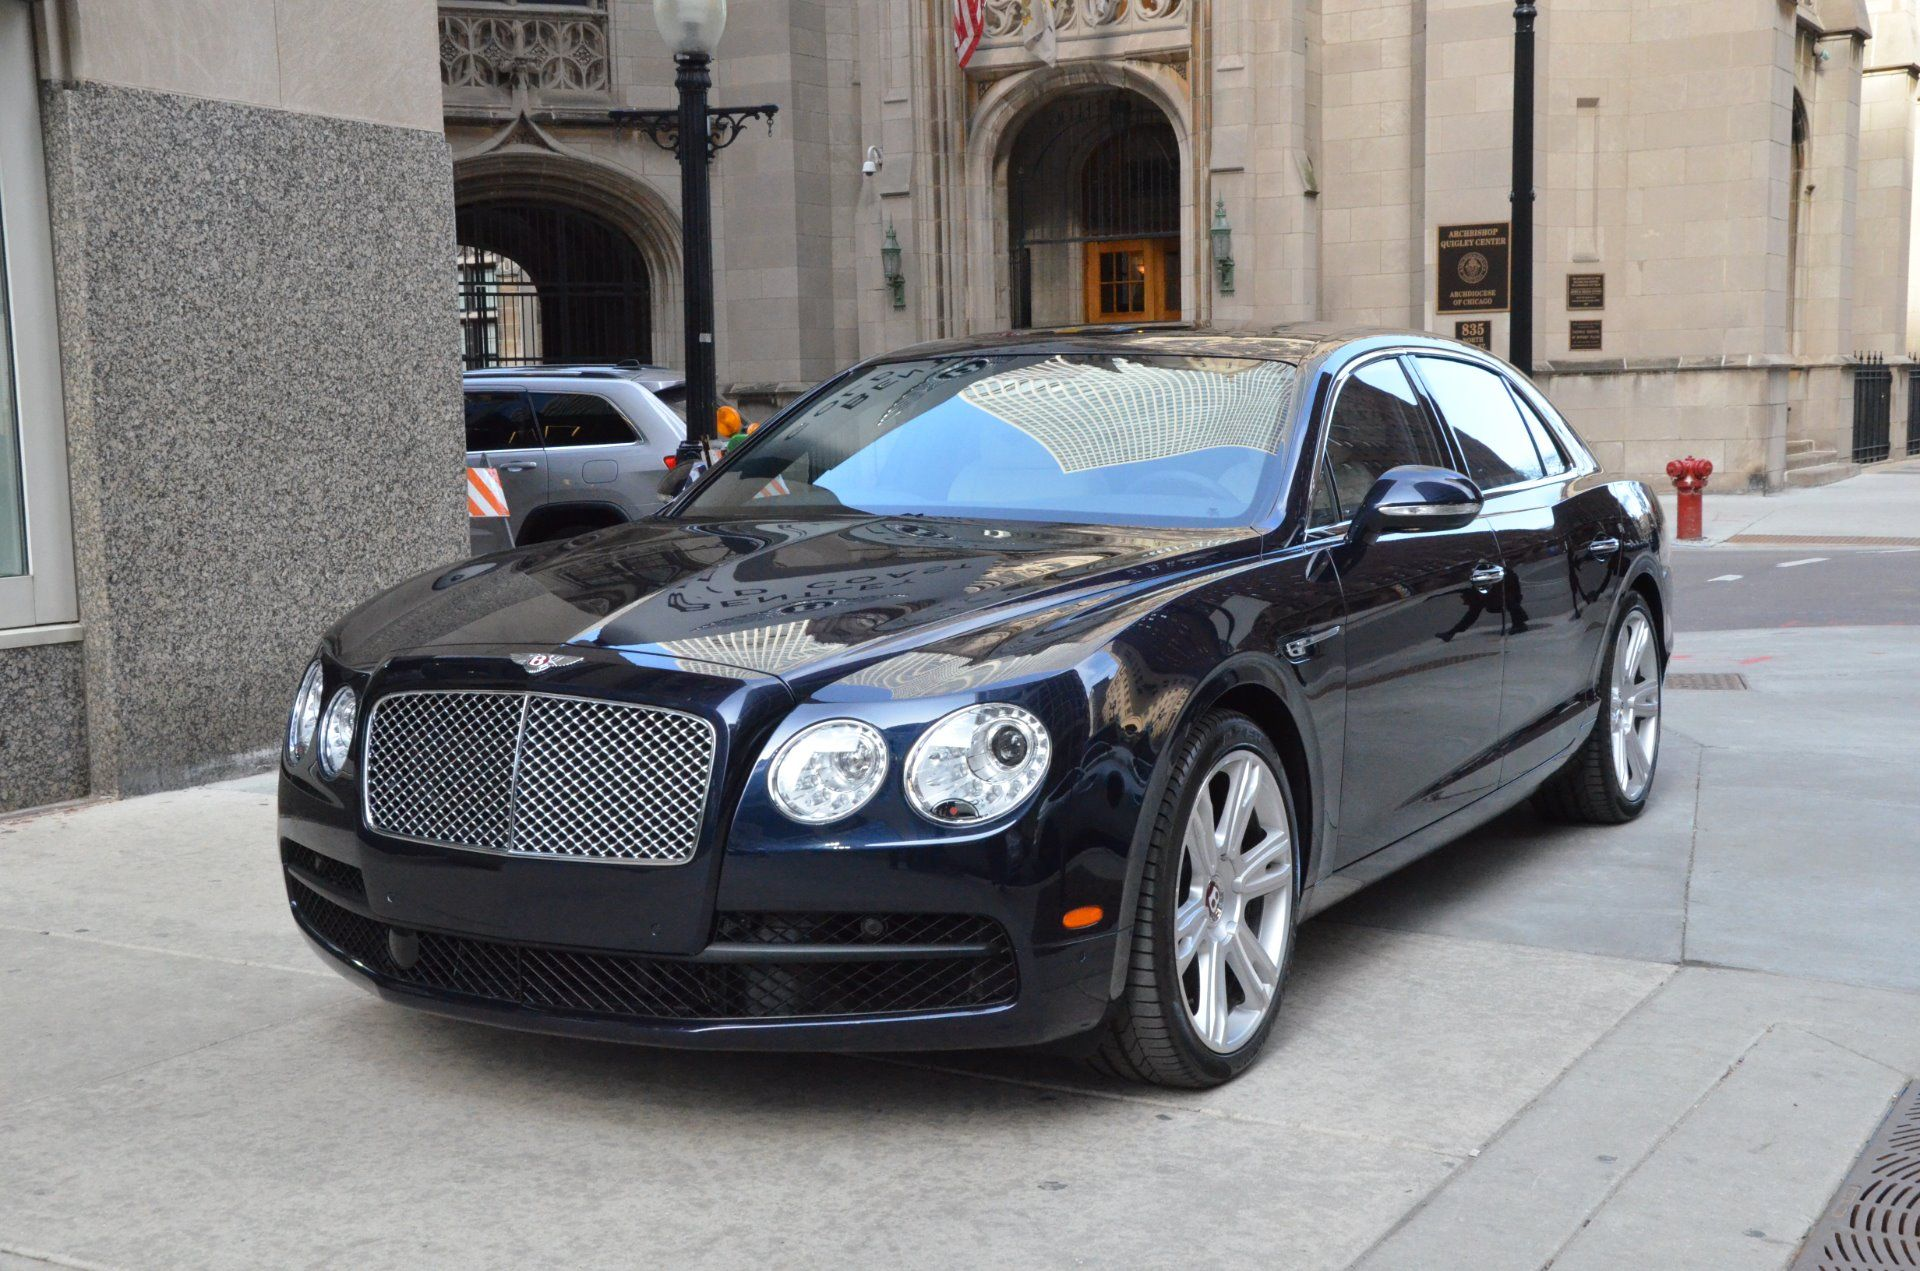 se call n key pre discover ig owned for bentleyqatarofficial tag selection bentley inquiries the cache please